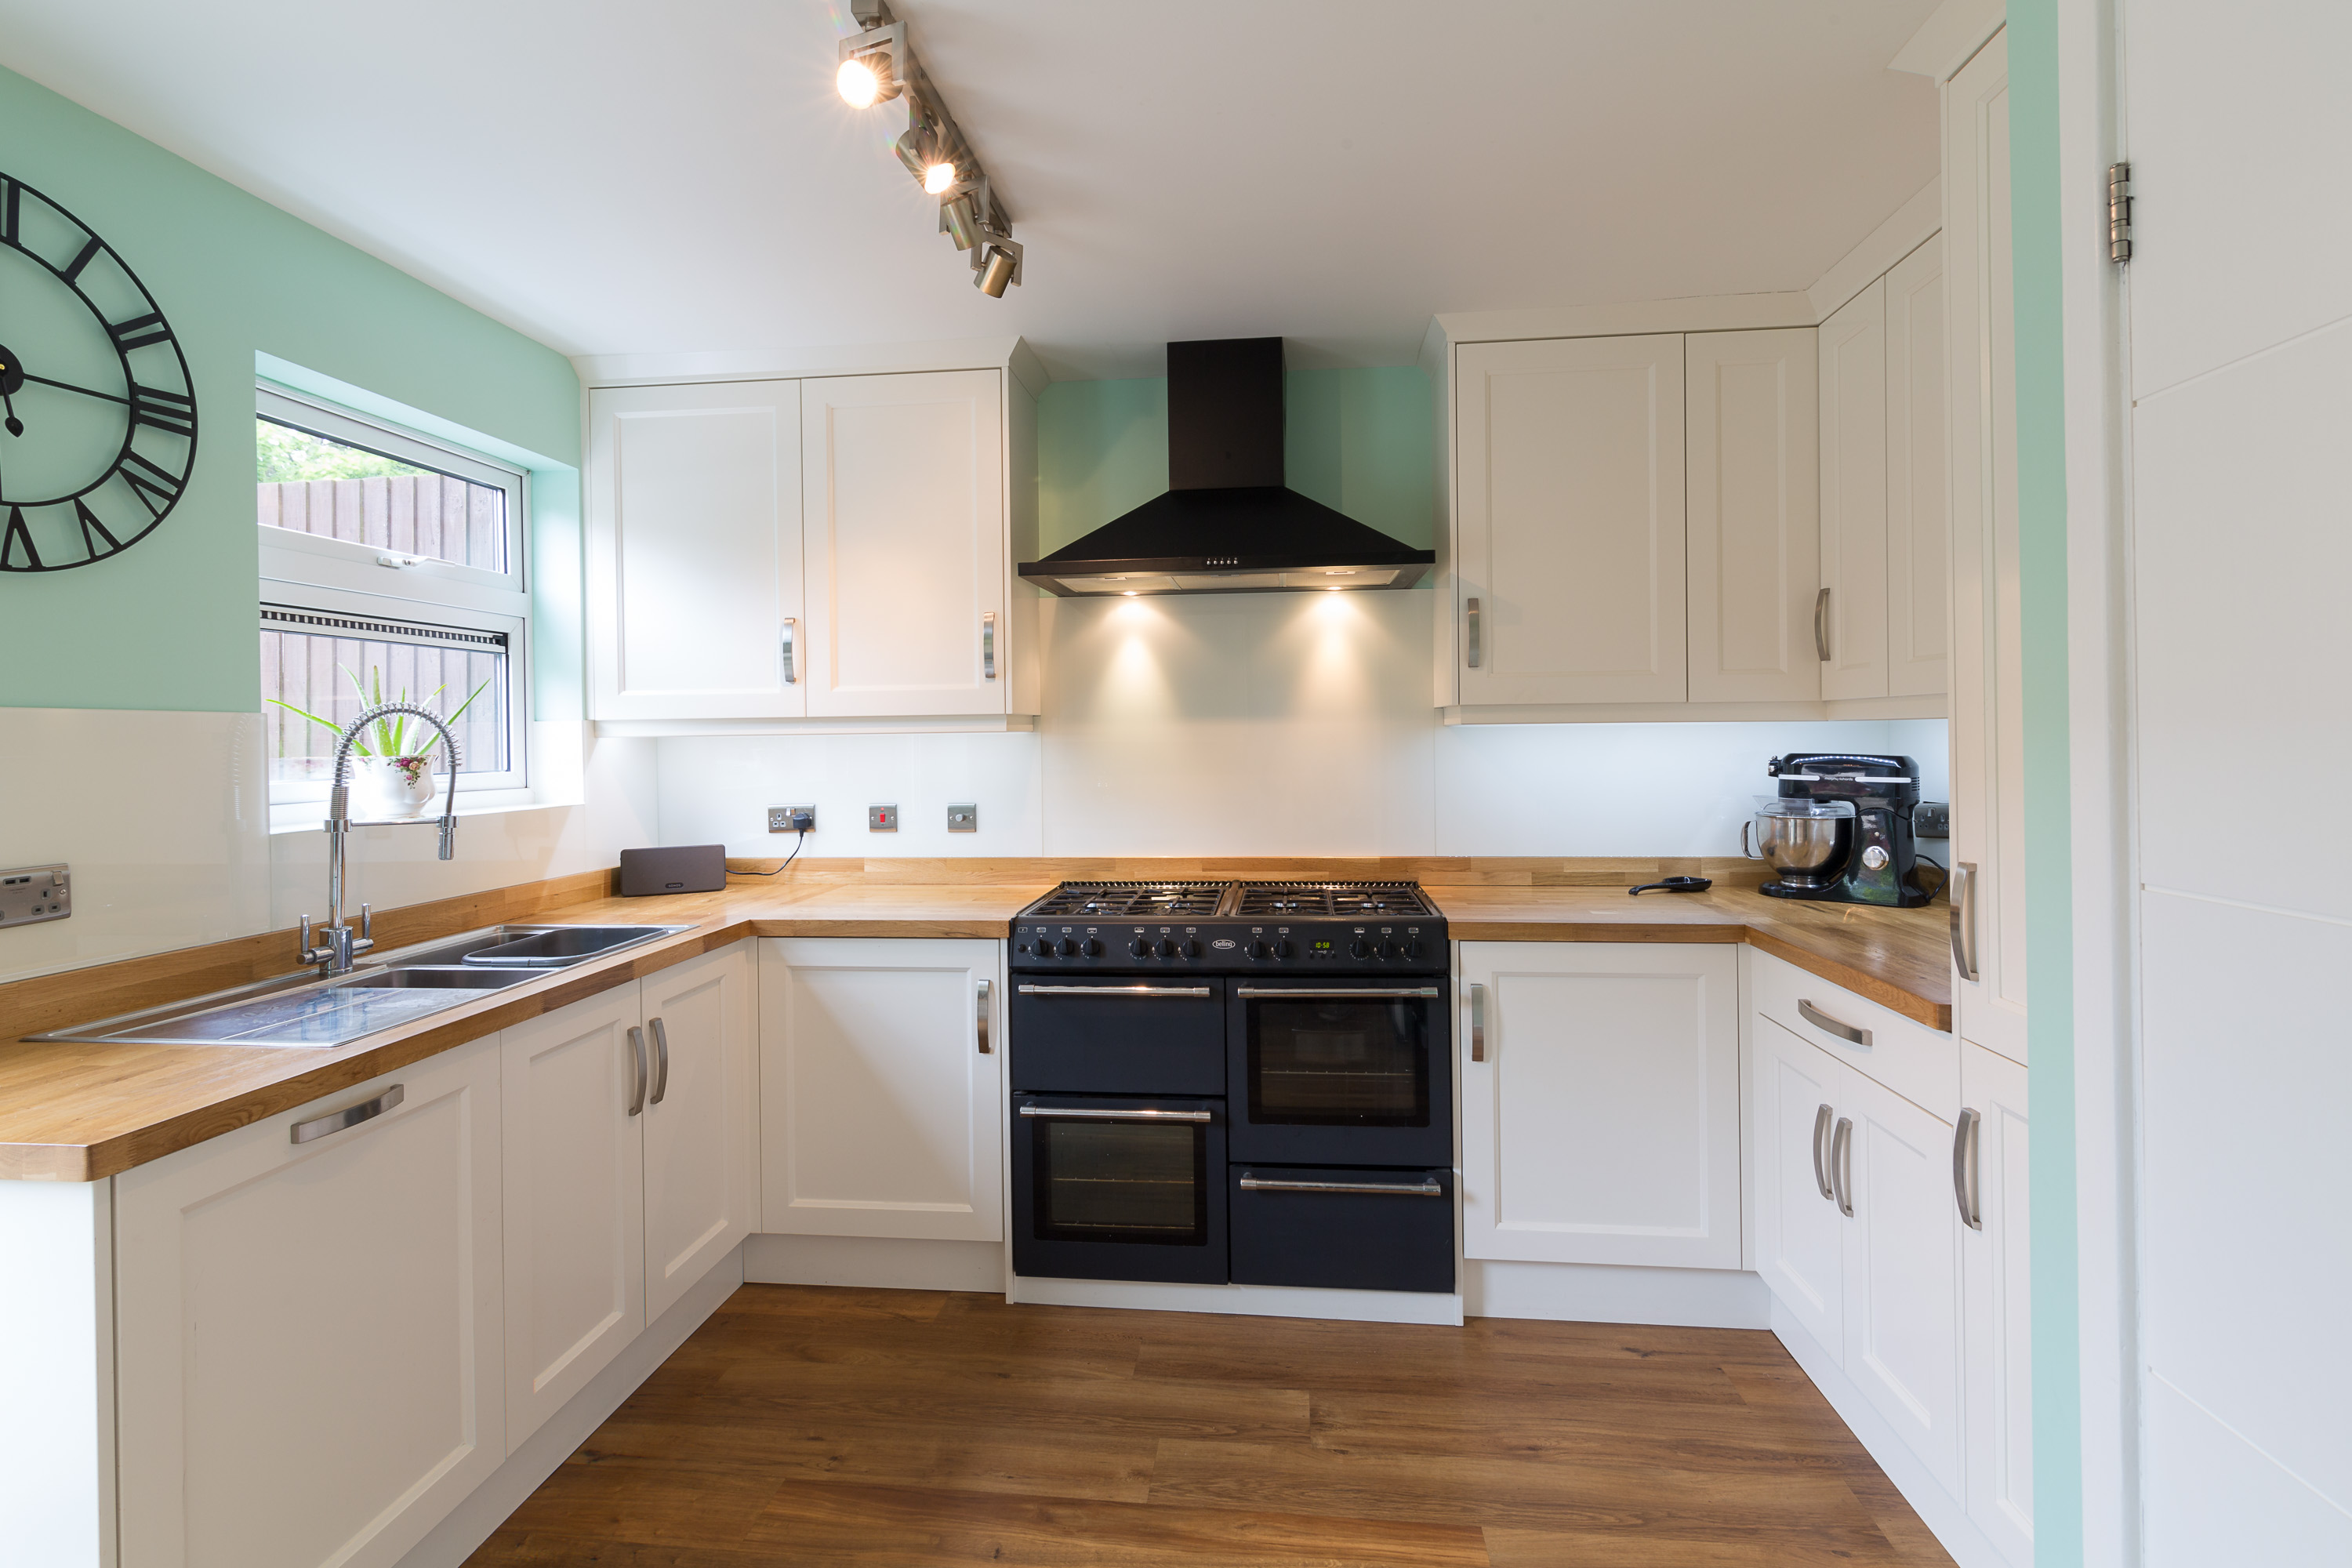 real wood kitchen by MPG Bespoke chesham